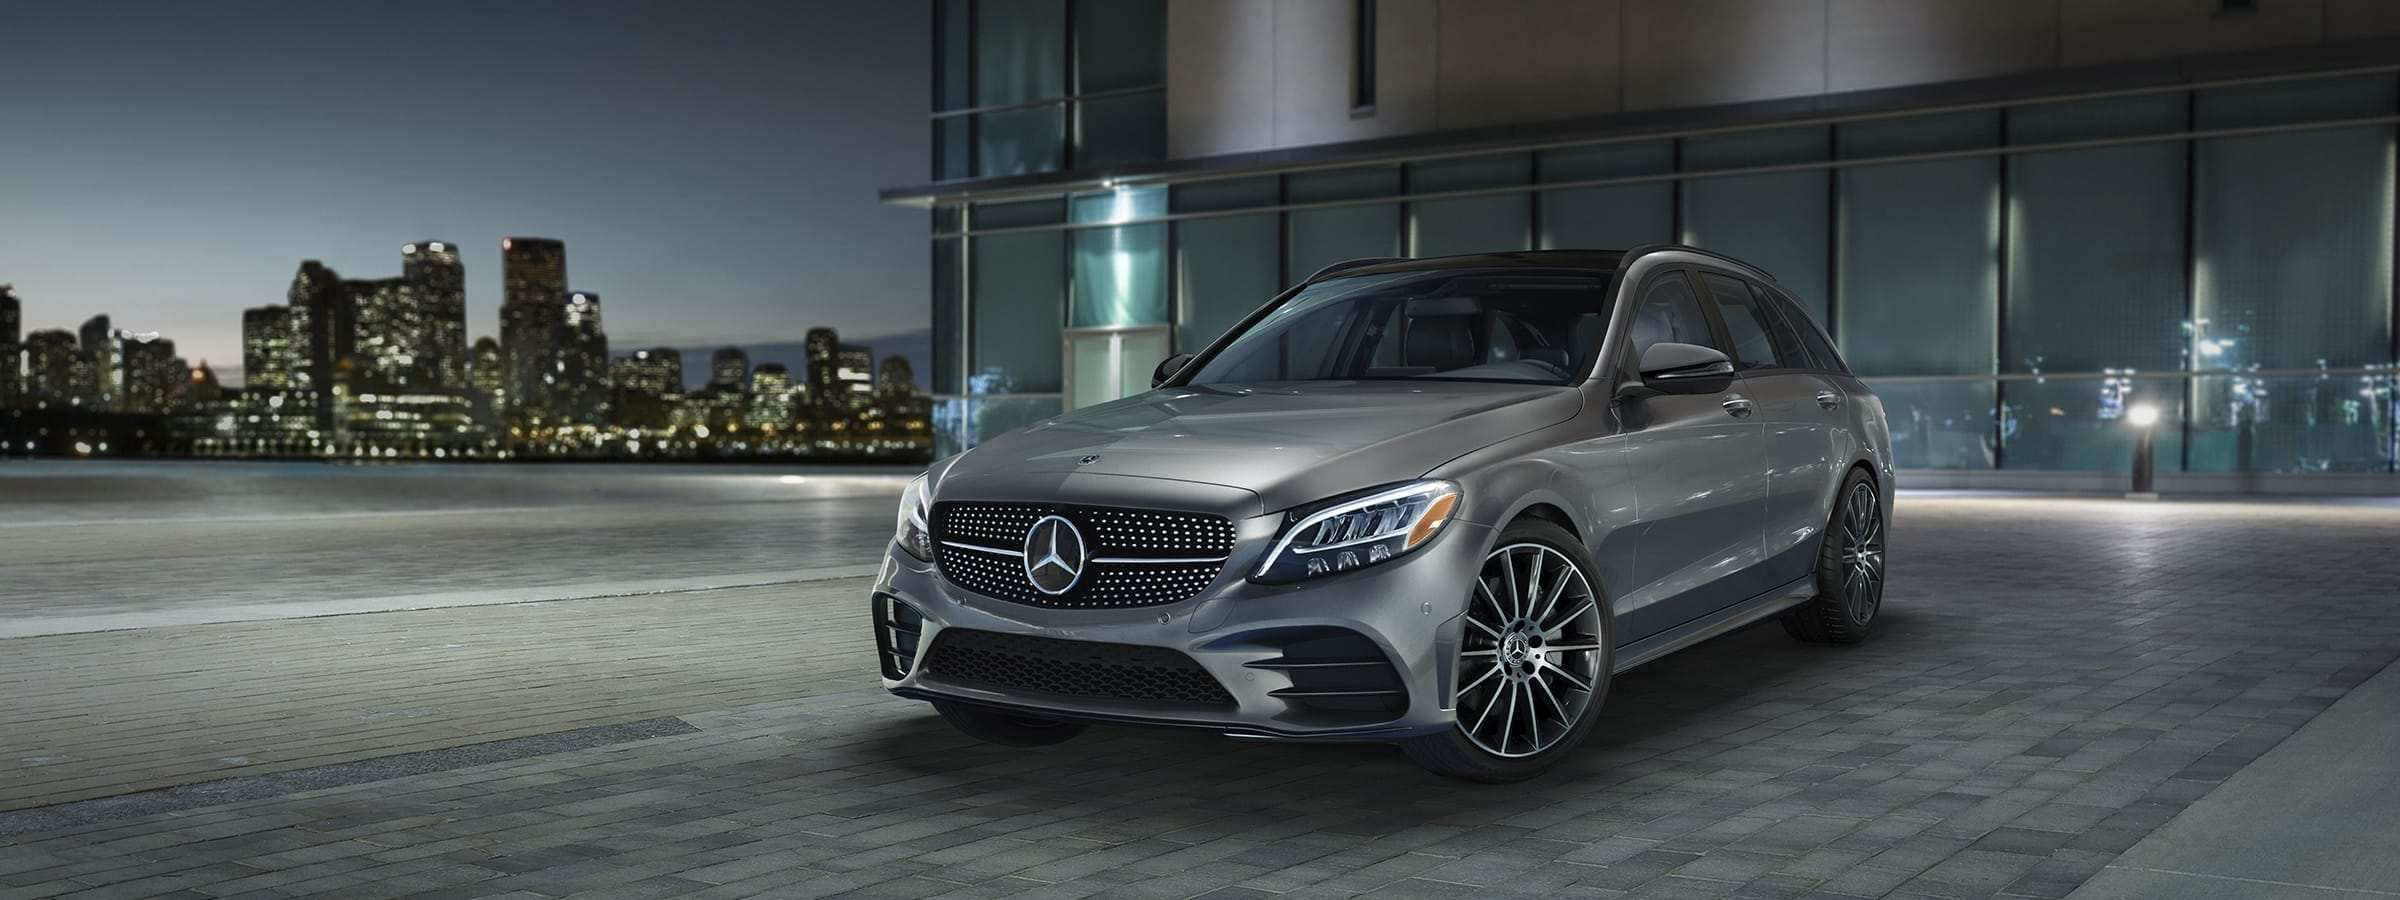 92 New The New Mercedes C Class 2019 New Concept